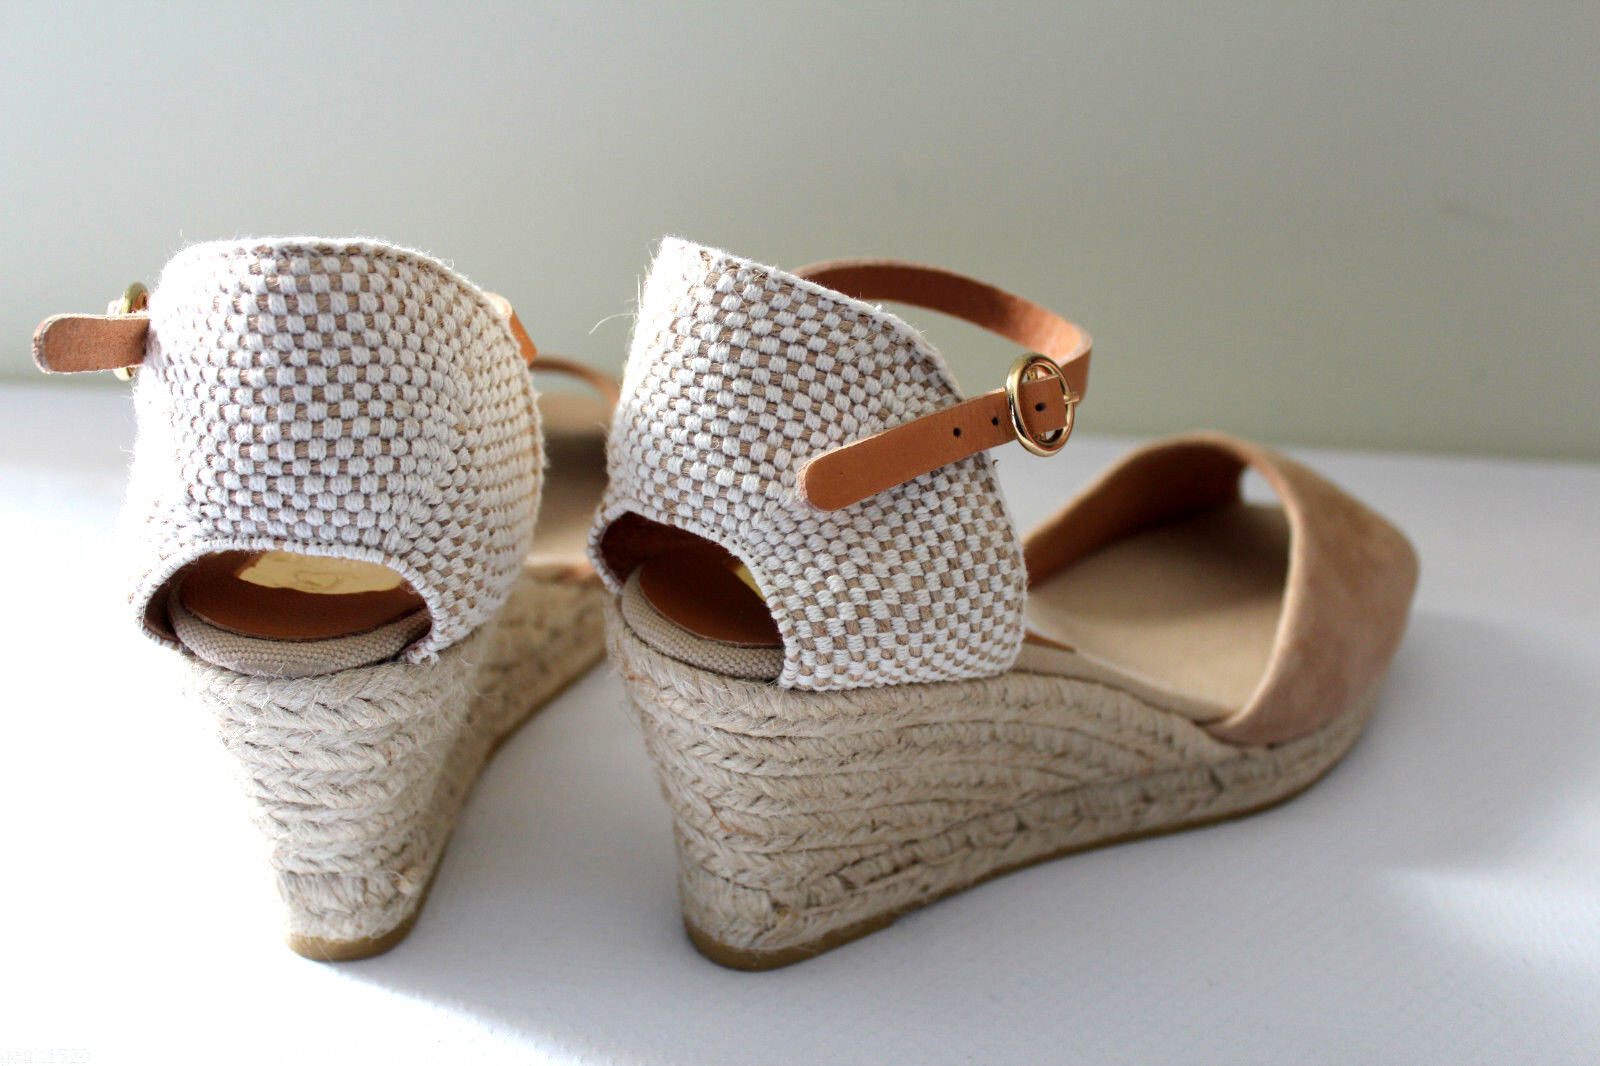 NEW Spanish  Kanna Beige Woven Suede Leder Espadrille Wedge Spanish NEW Sandales 40 10 178 72184d